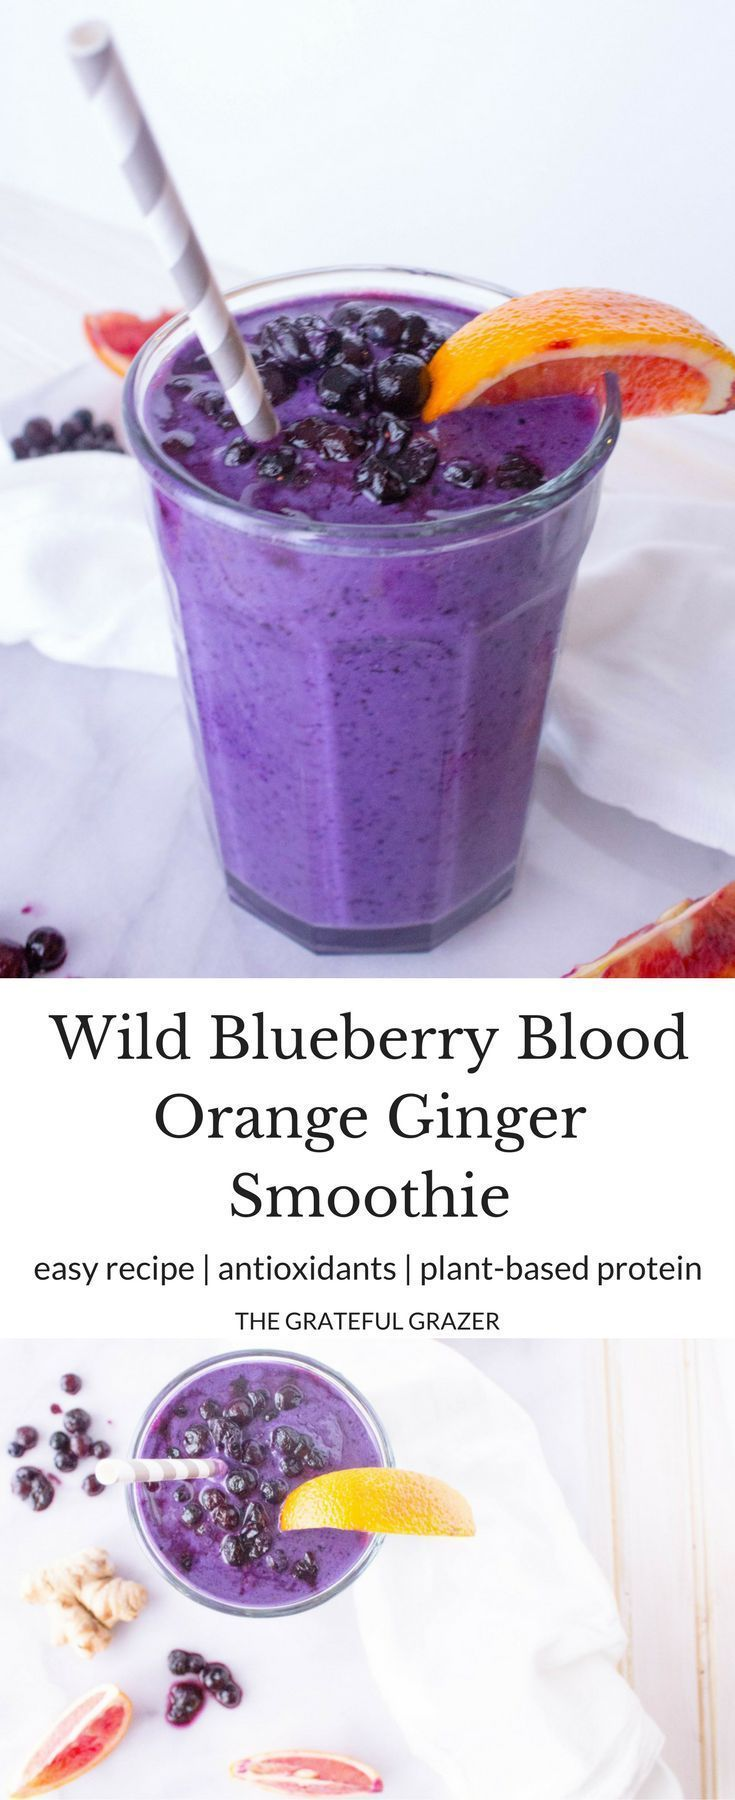 Ad: Wild Blueberry Blood Orange Ginger Smoothies! Such a refreshing and delicious recipe with silken tofu for creamy texture and plant-based protein. Vegan. via @gratefulgrazer